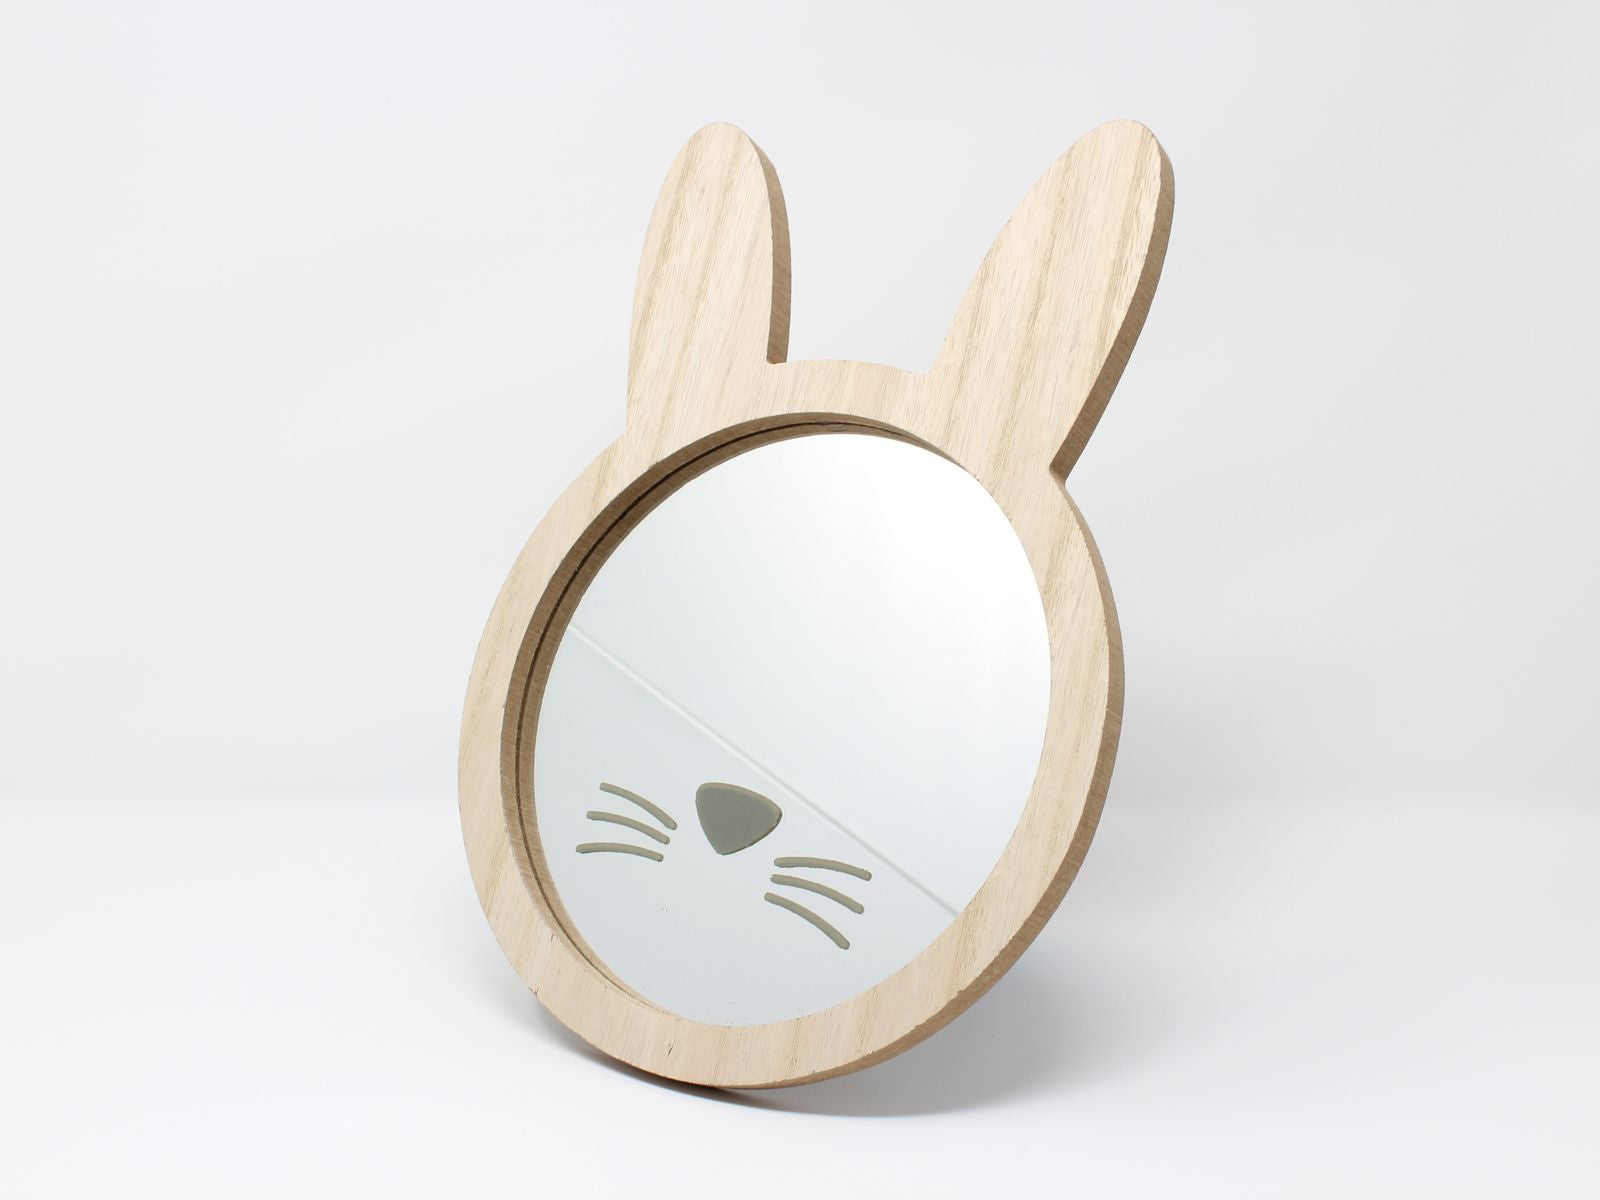 Wooden bunny rabbit face childrens wall mirror for my house wooden bunny rabbit face childrens wall mirror amipublicfo Choice Image